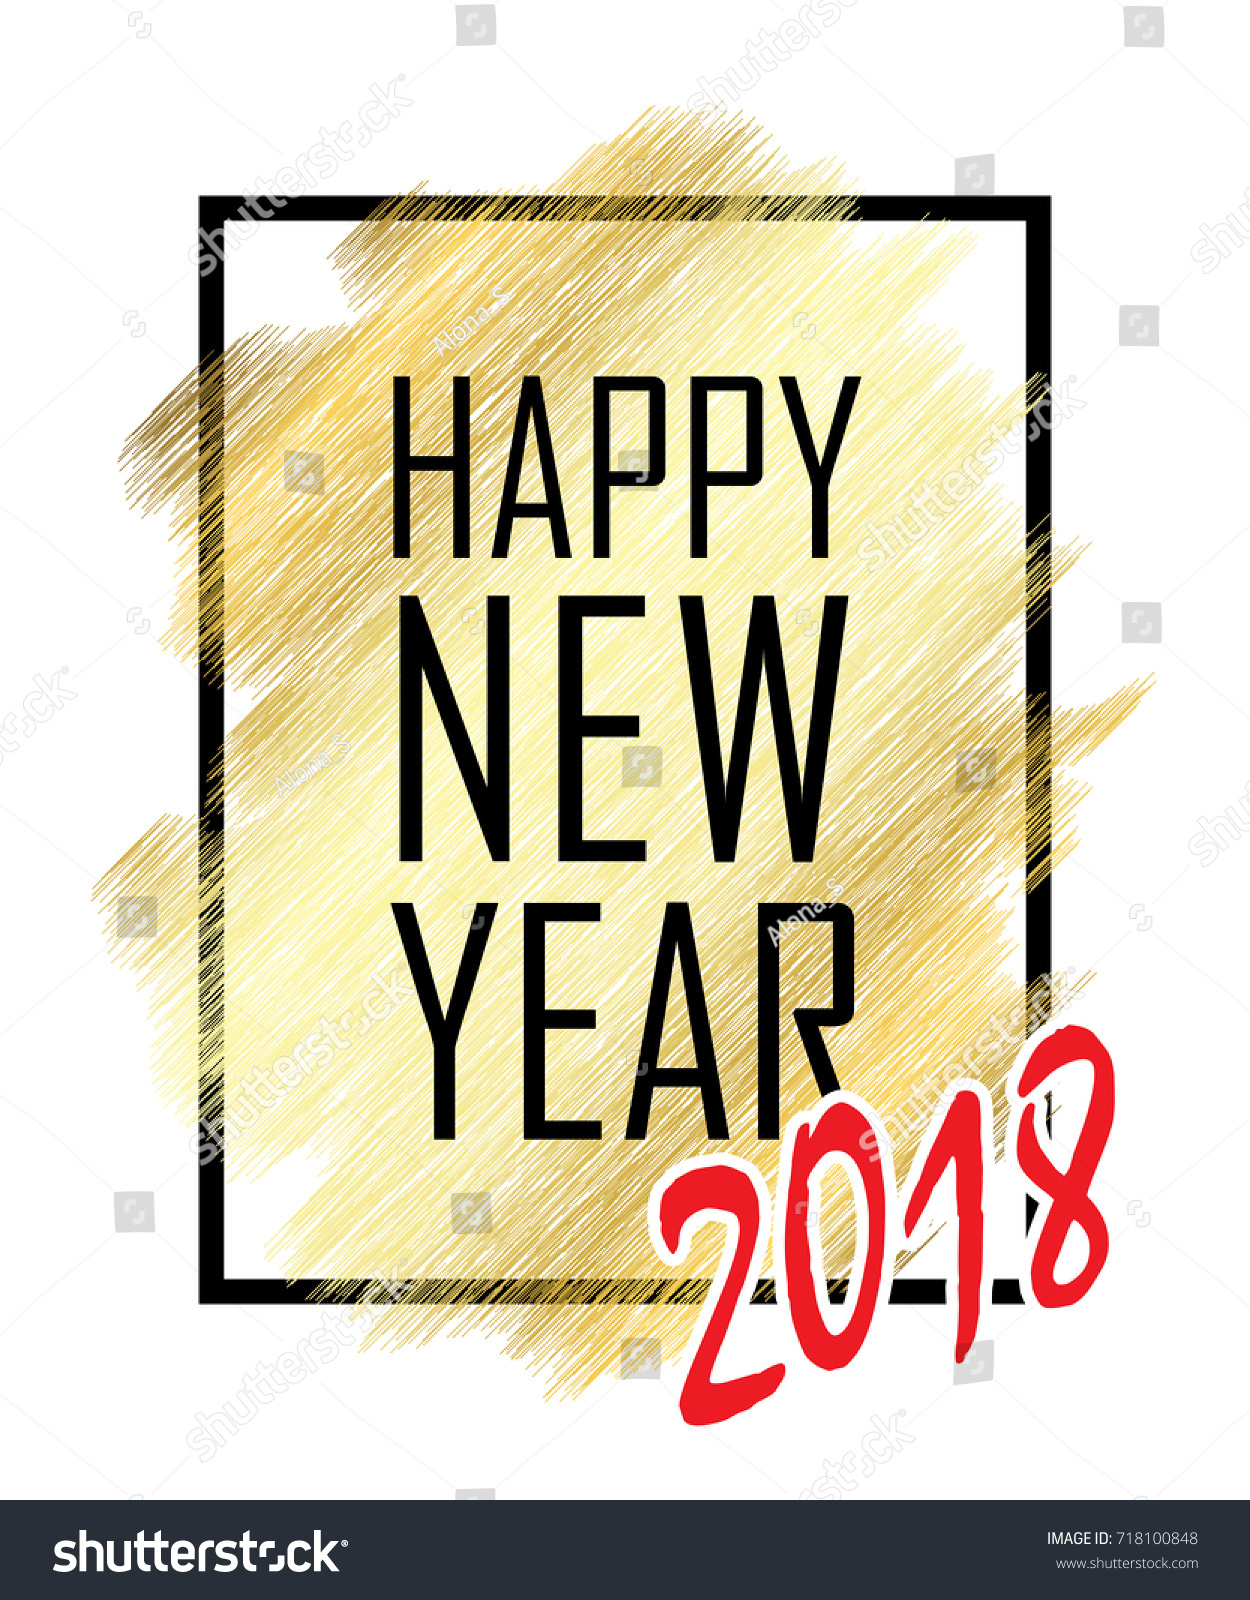 happy new year 2018 text gold happy new year or christmas isolated background black